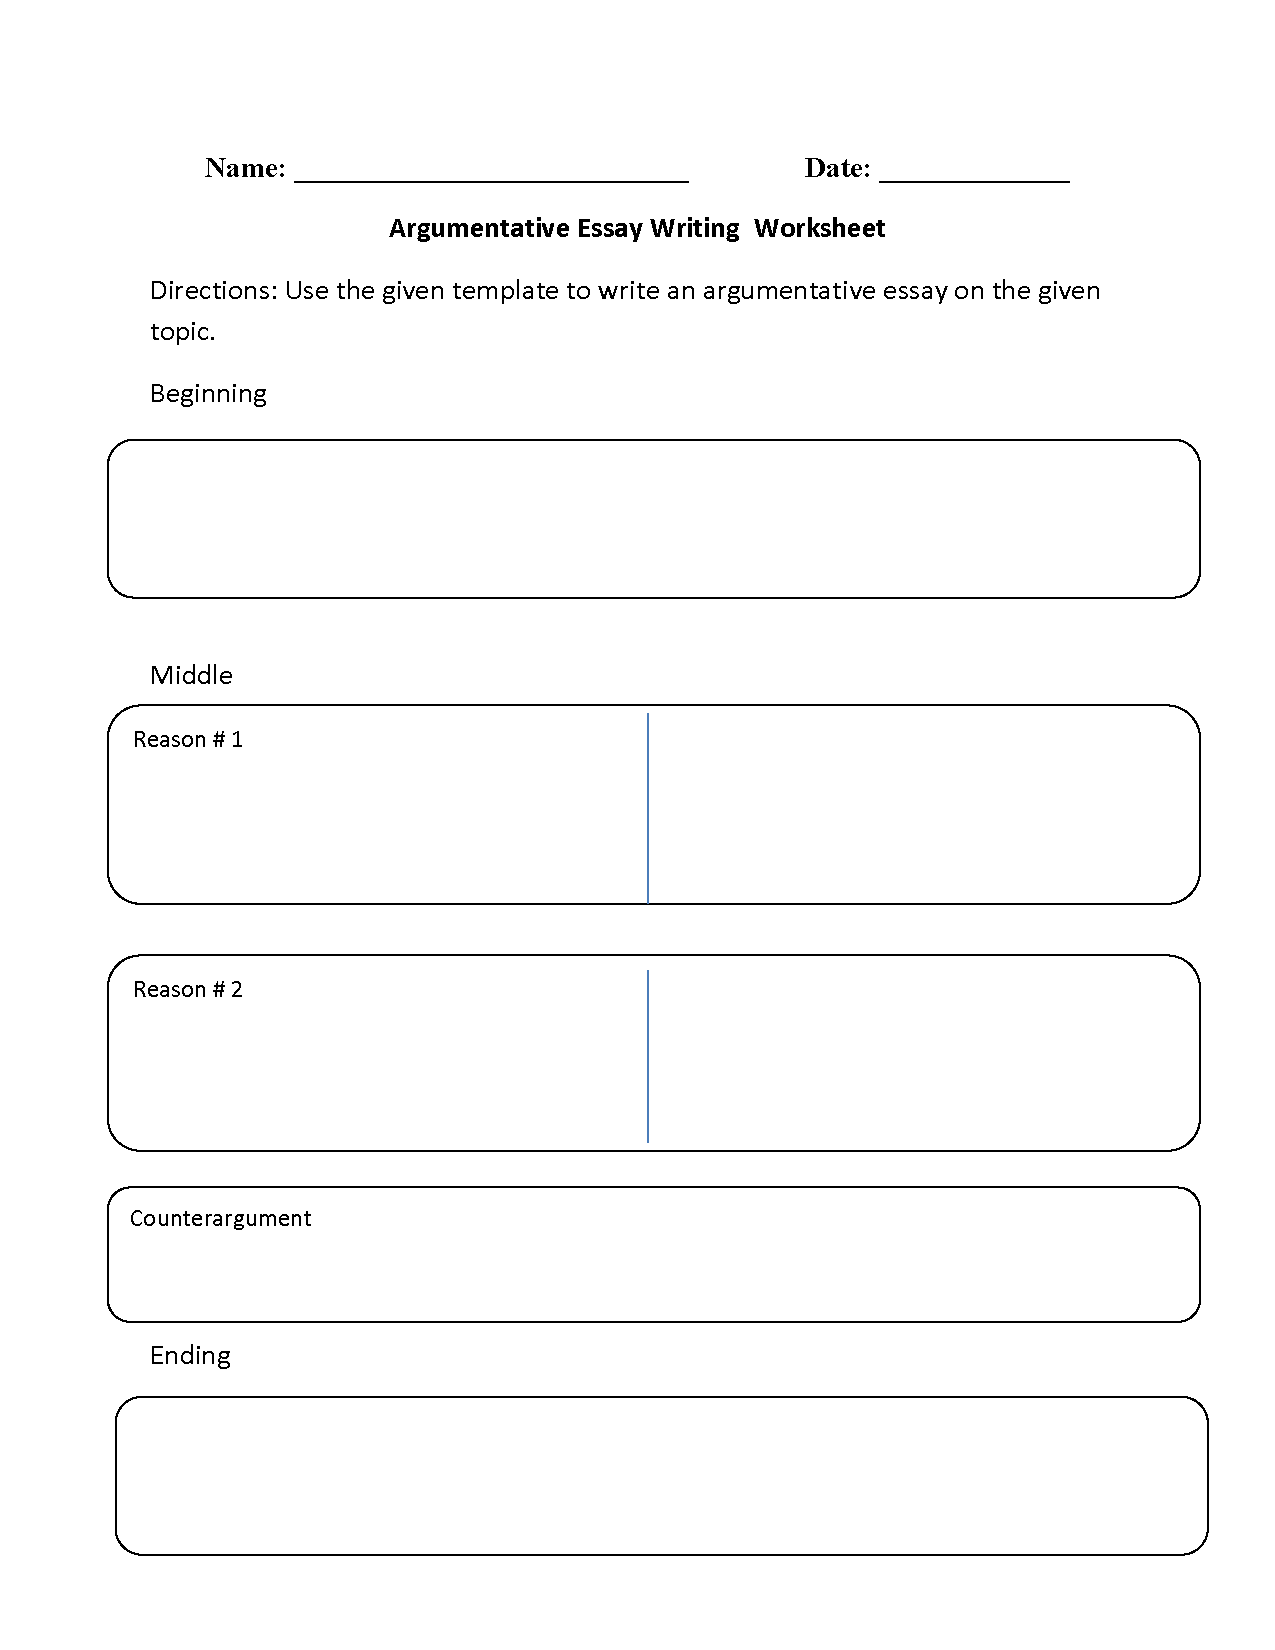 Writing Worksheets – Fifth Grade Writing Worksheets